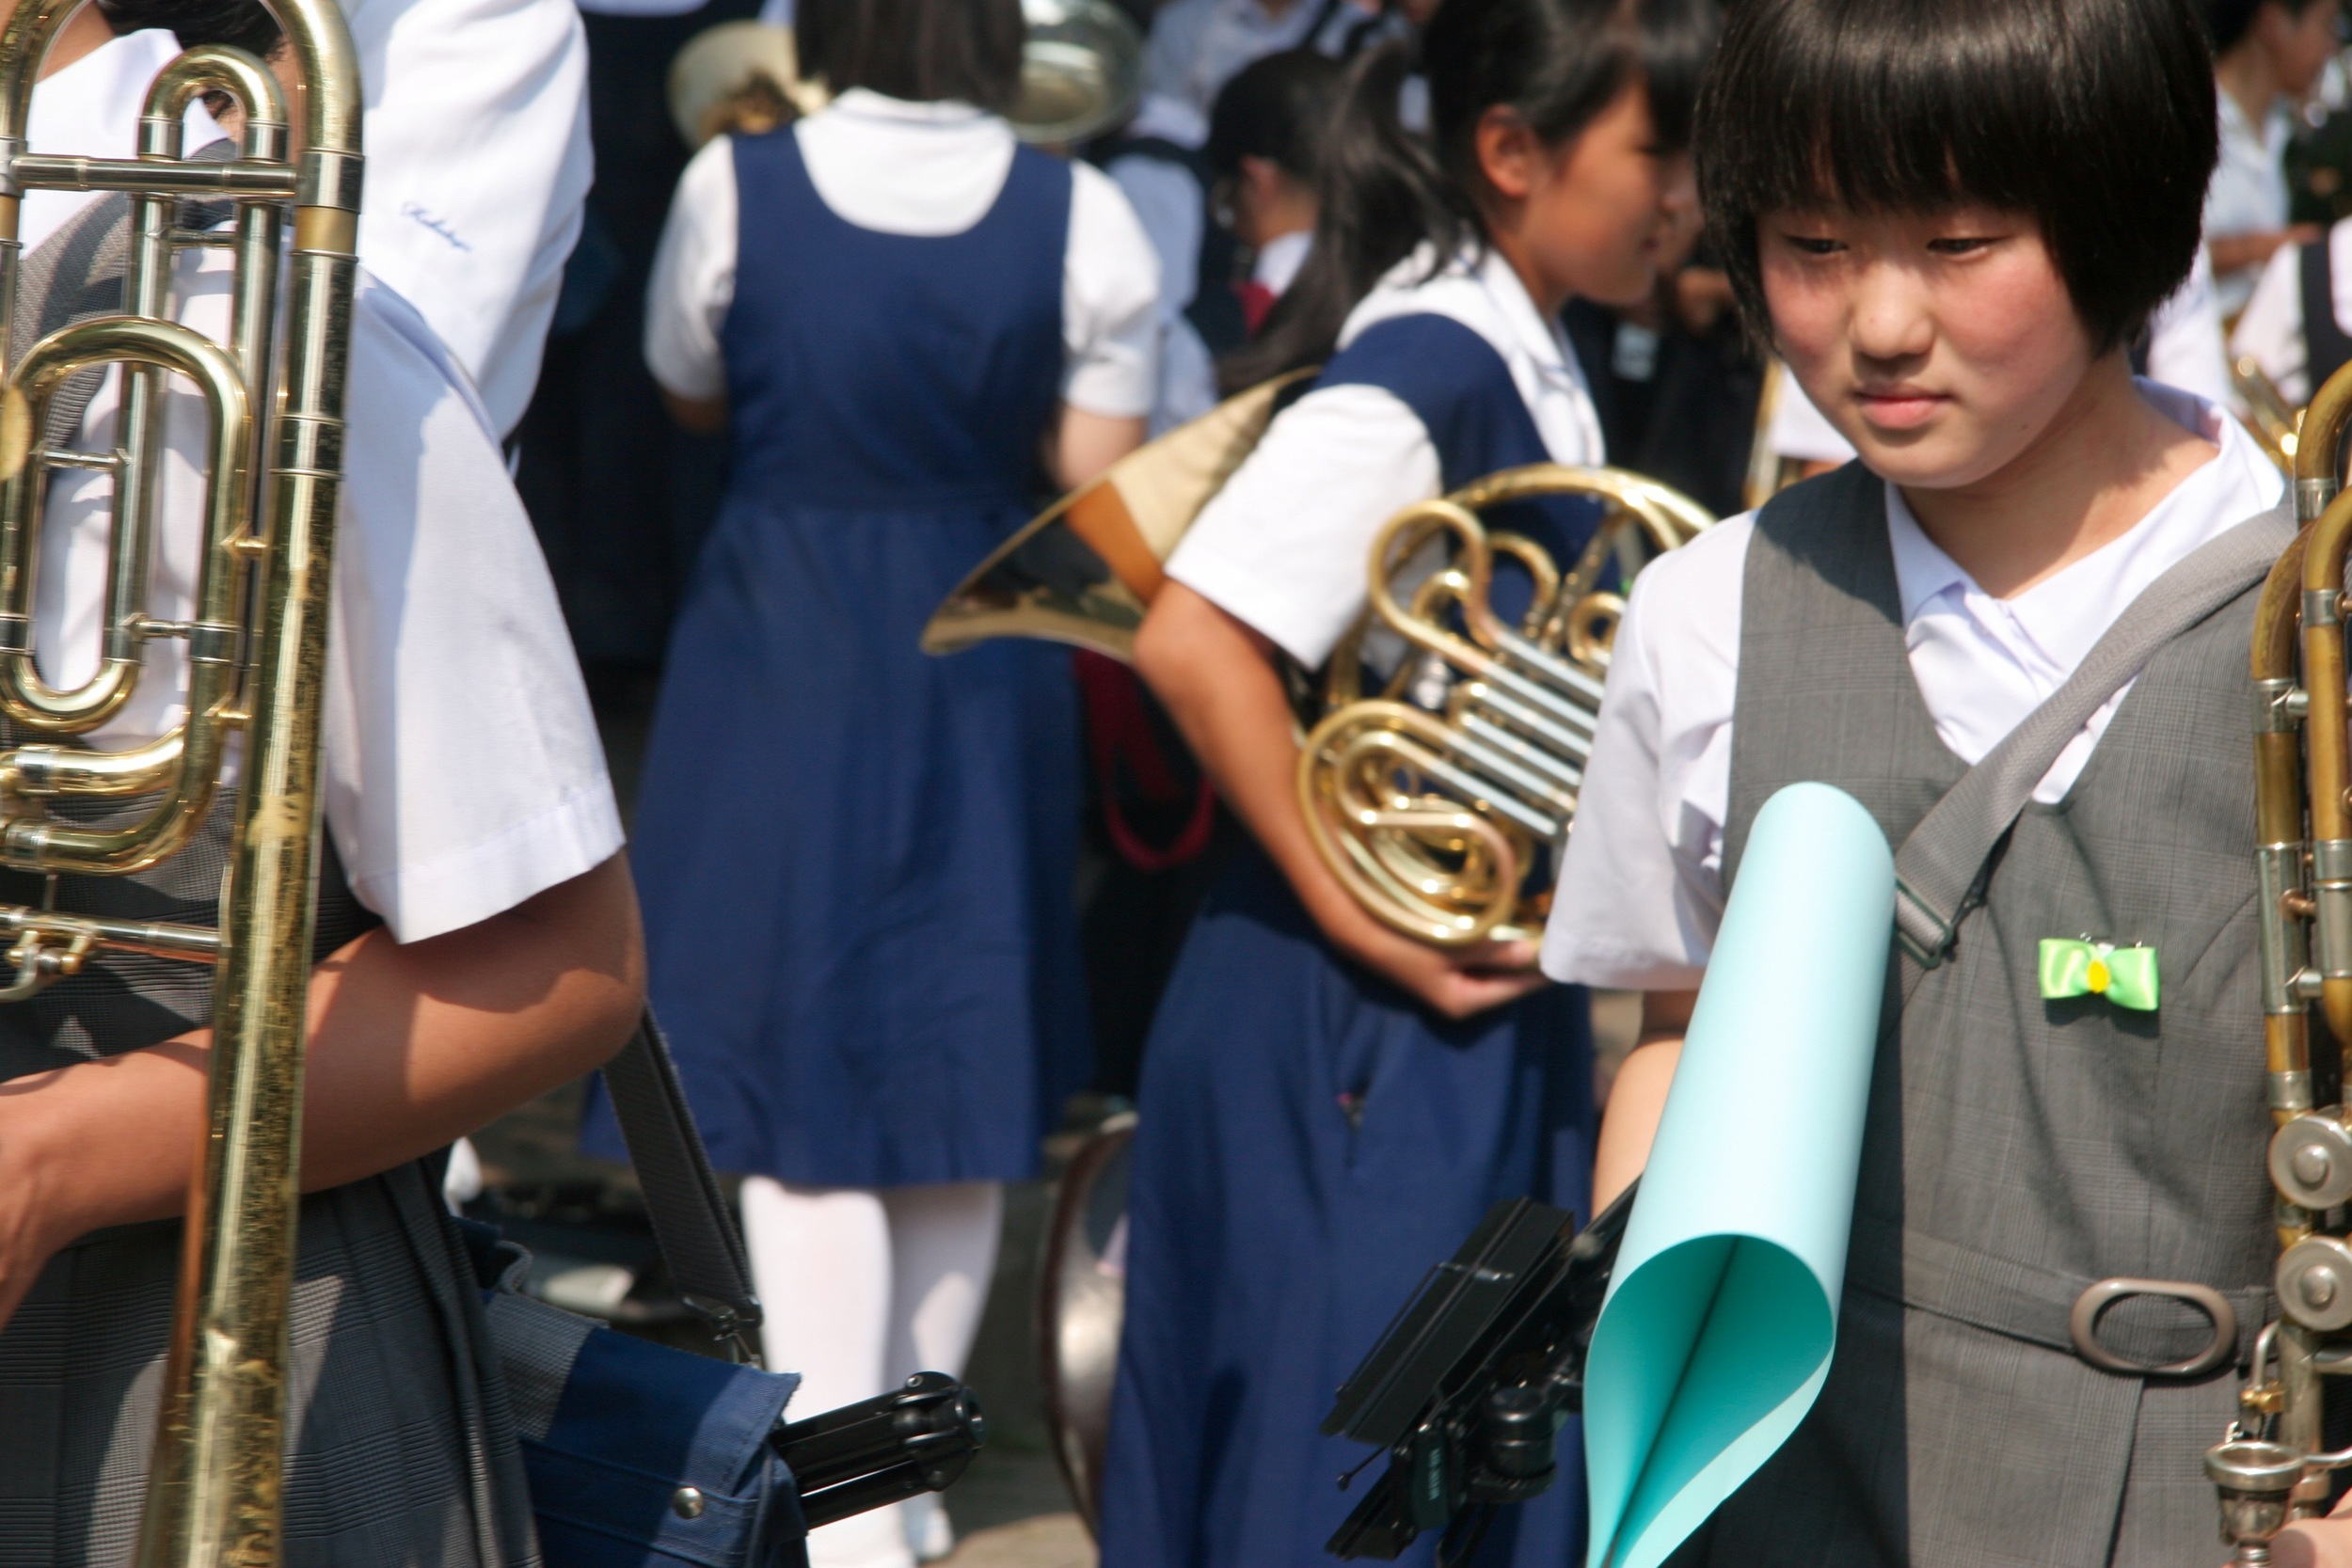 Students pack up their instruments as the ceremony ends, while others went to read the story of Sadako Sasaki in multiple languages in the park